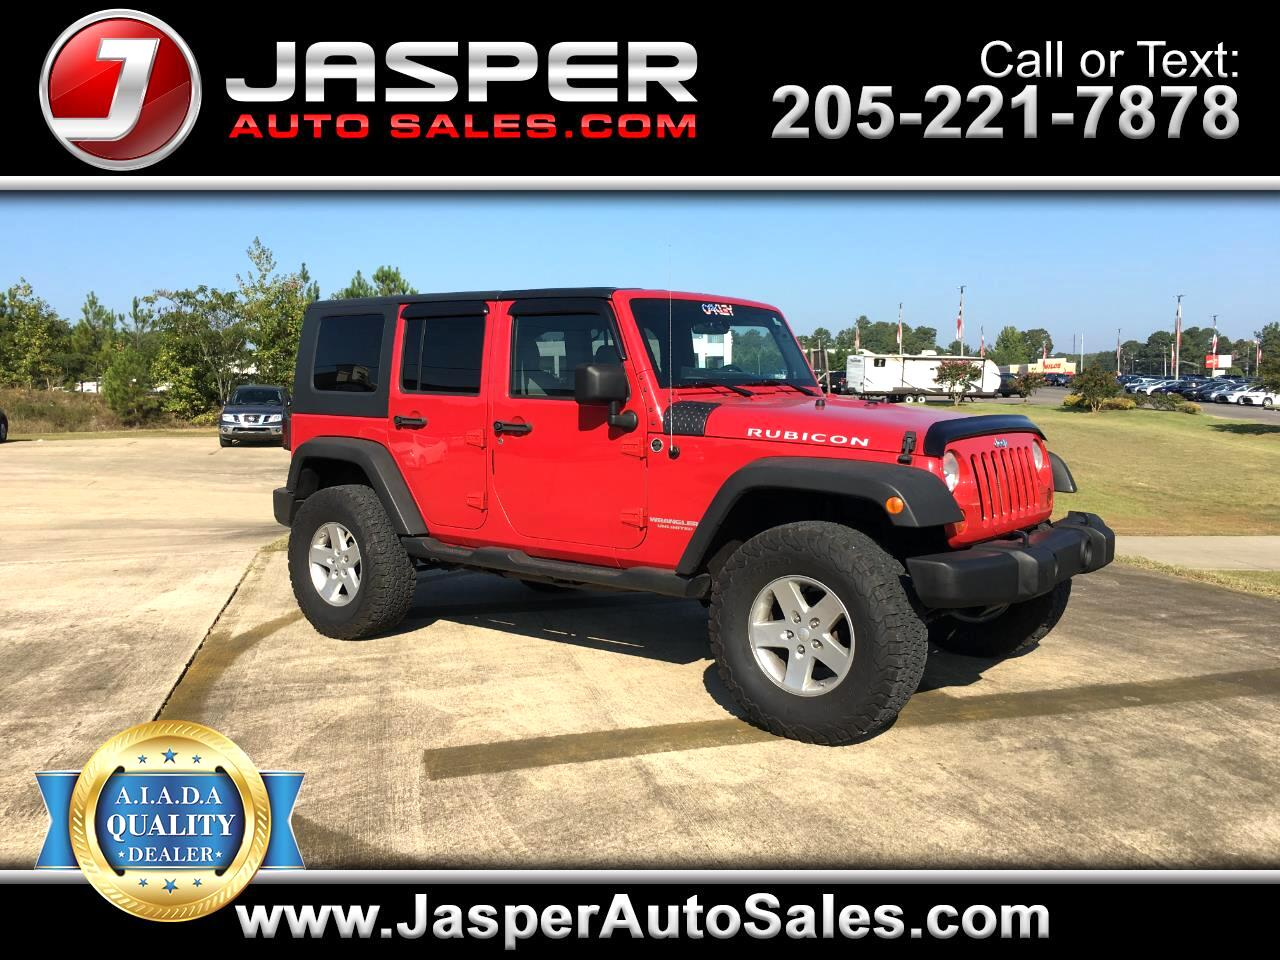 2008 Jeep Wrangler Unlimited 4WD 4dr Rubicon